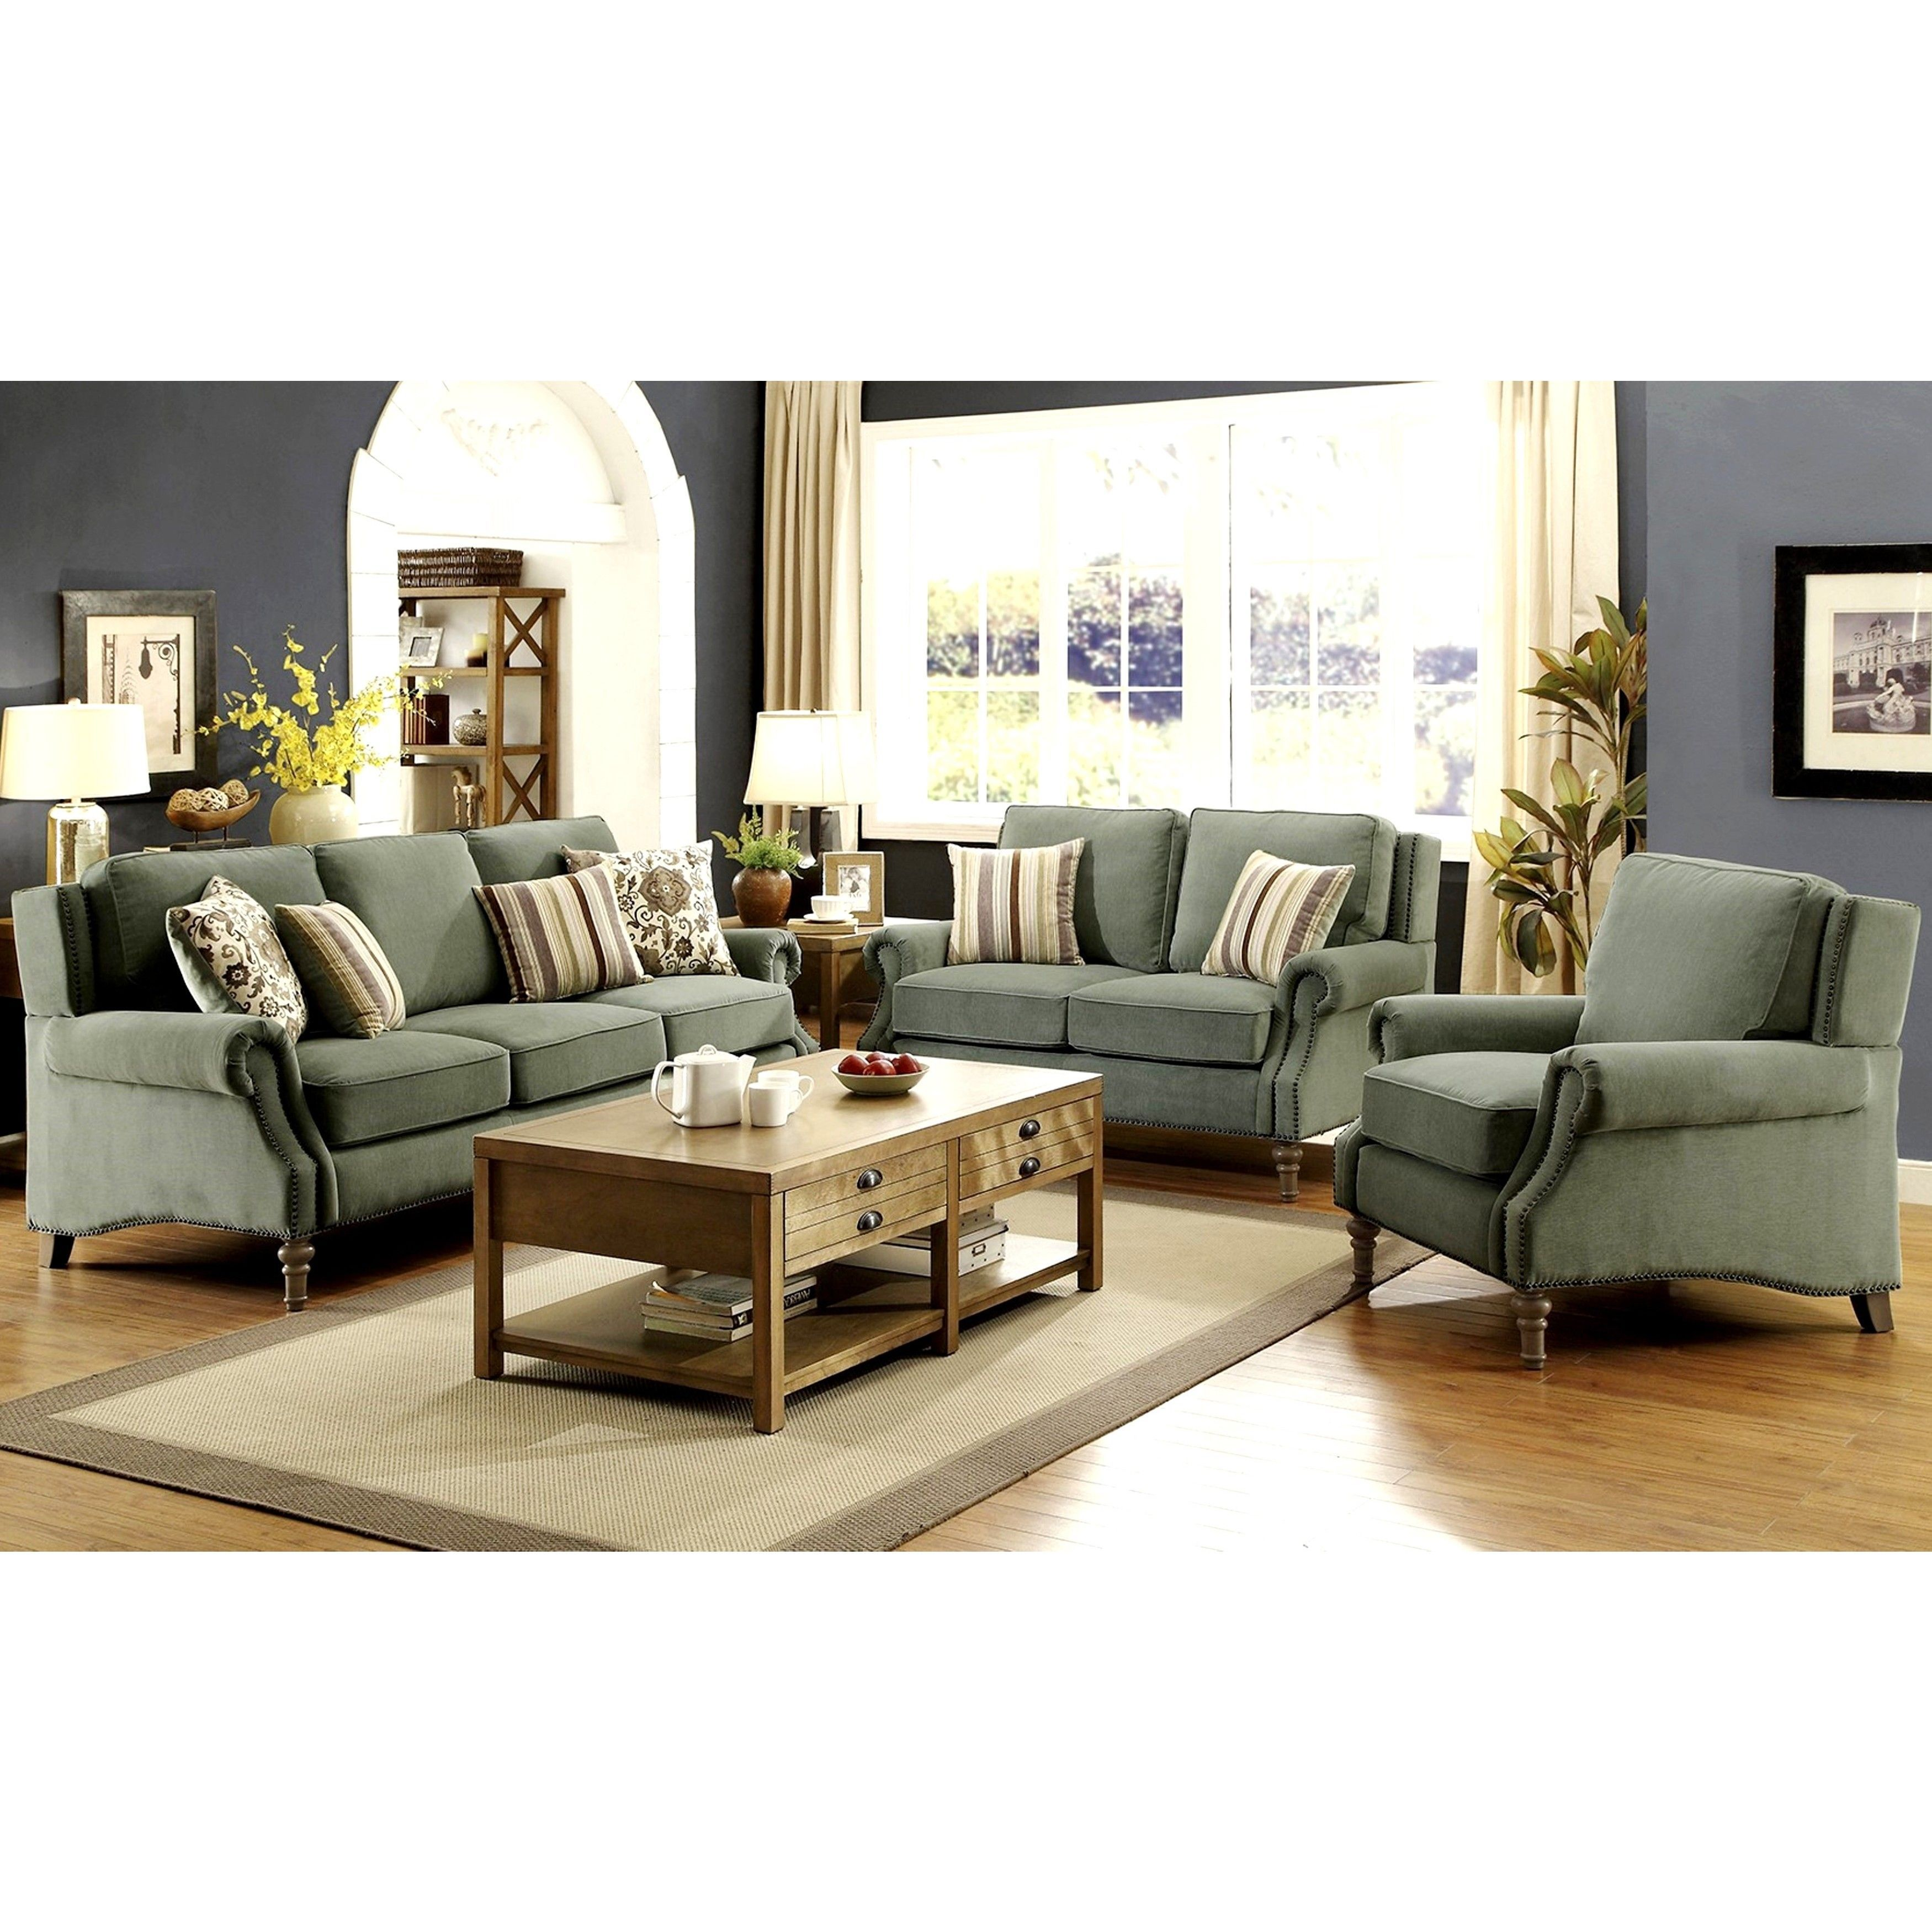 Mid Century French Design Microvelvet With Nailhead Trim Living Room Sofa  Collection (1 Loveseat)